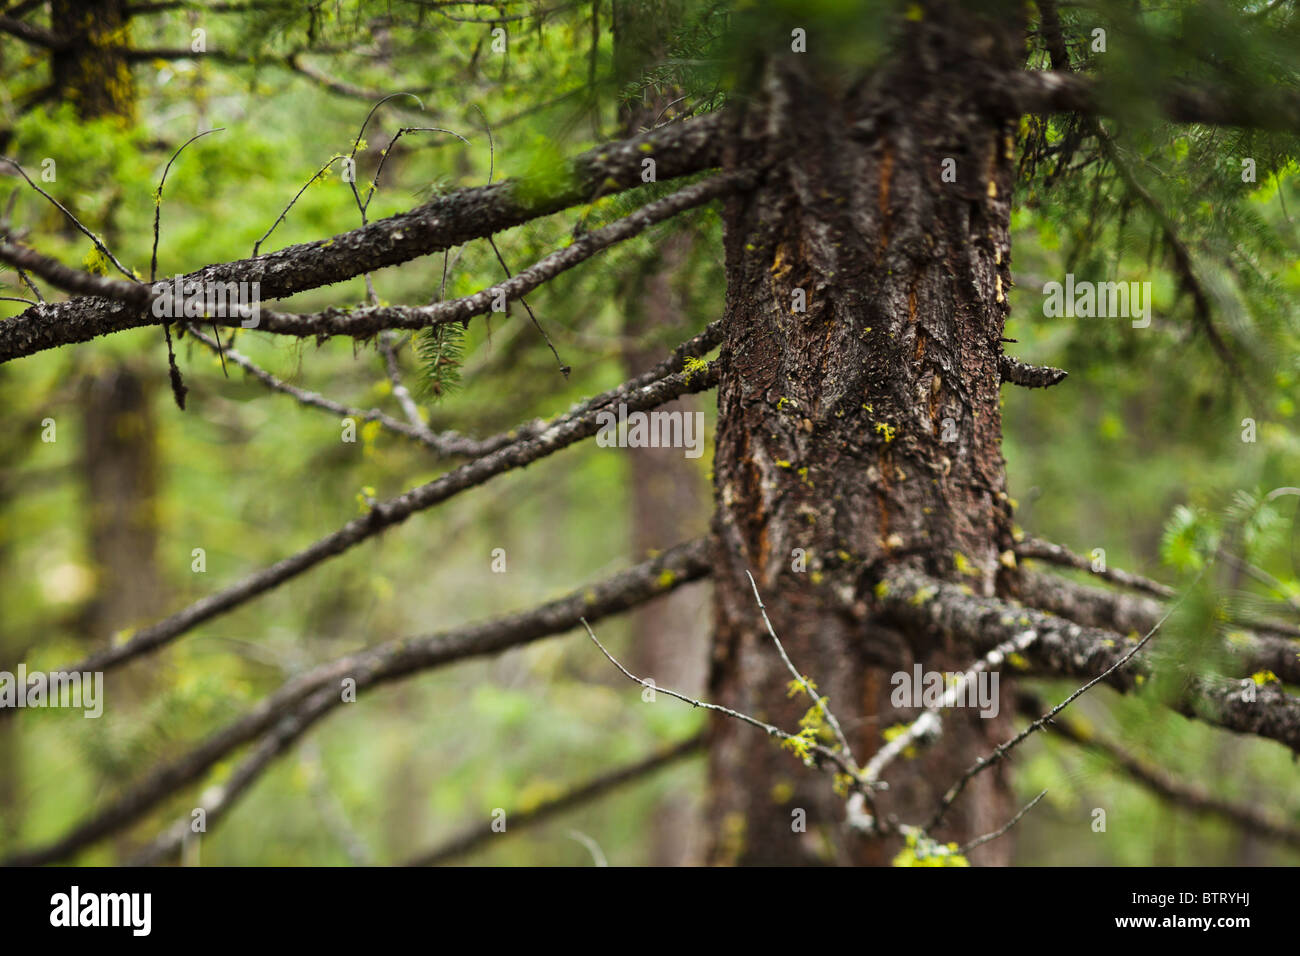 Narrowly focused view of a tree and branches in a forest. Eastern Cascades of Washington State, USA. - Stock Image